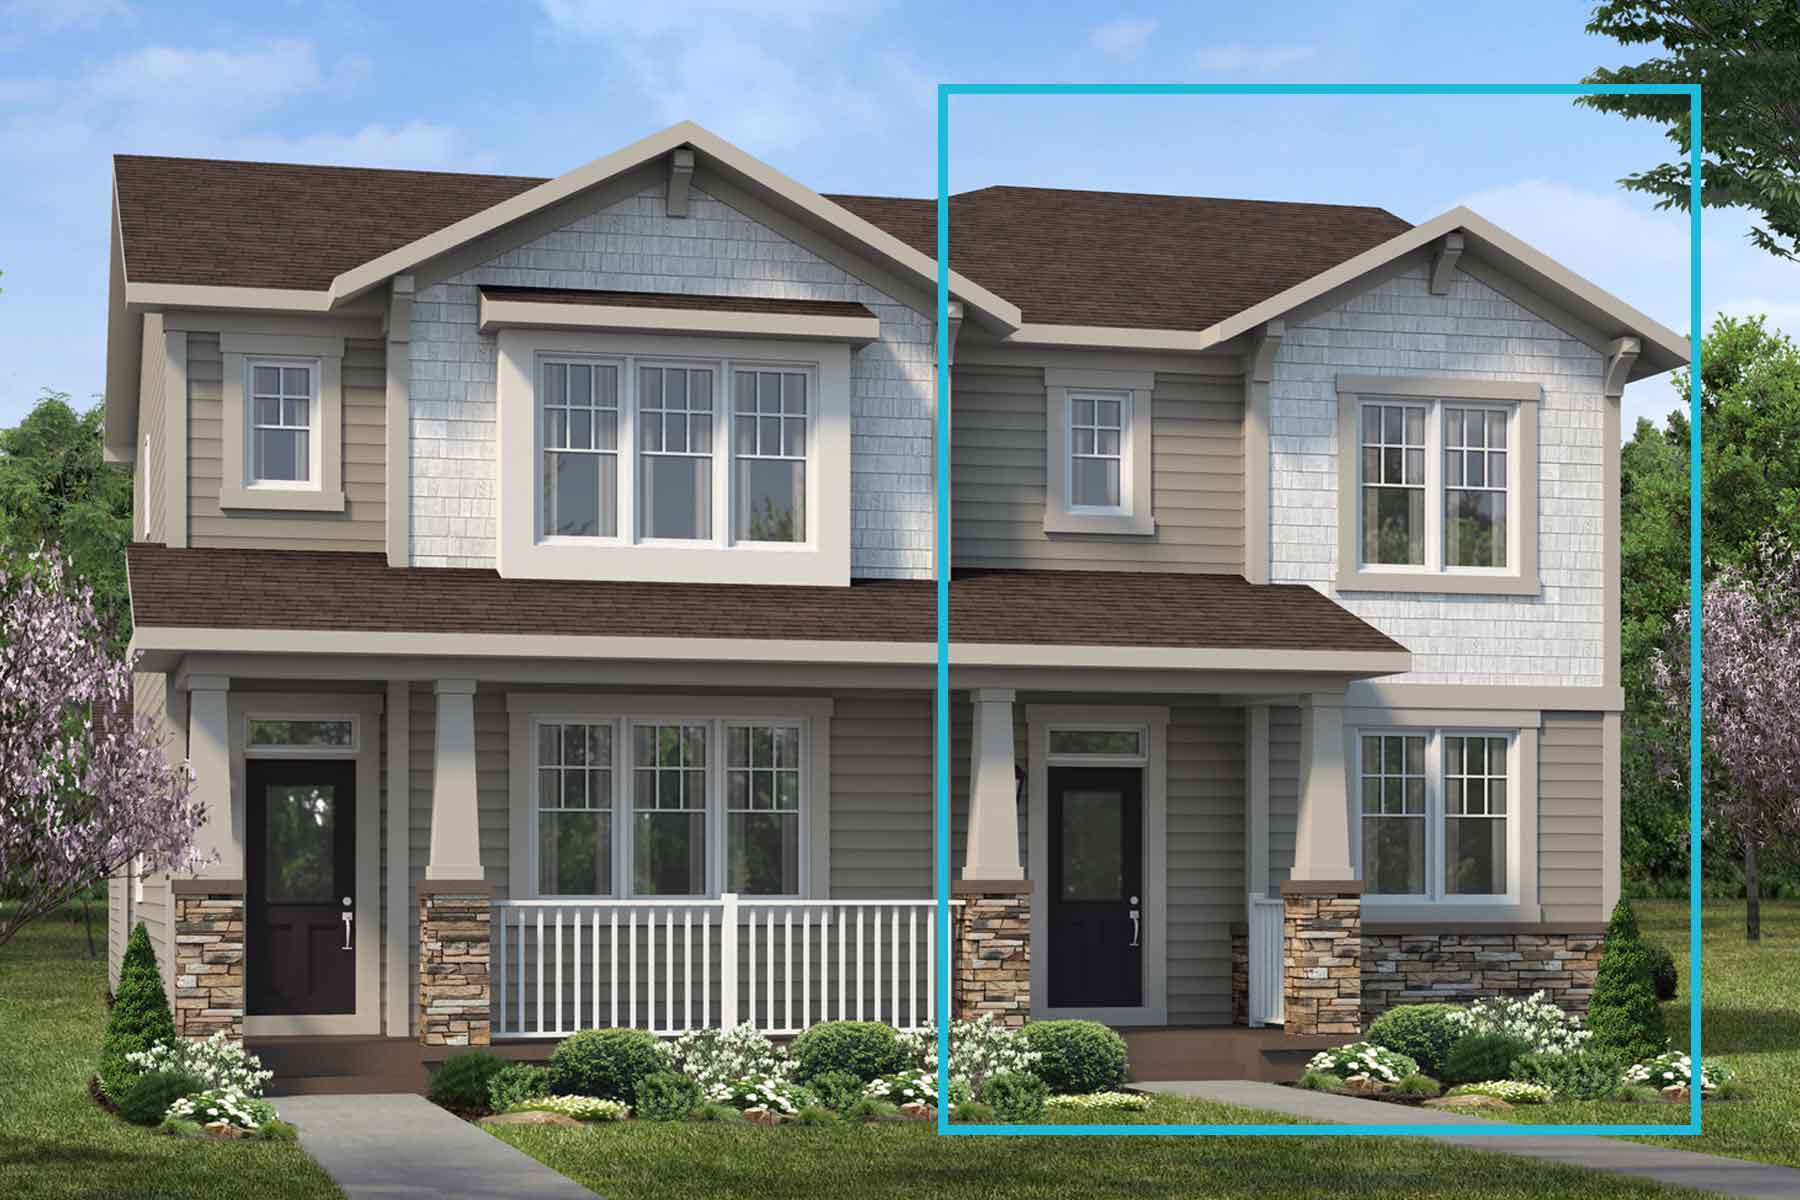 Palliser Plan Elevation Front at Carrington in Calgary Alberta by Mattamy Homes